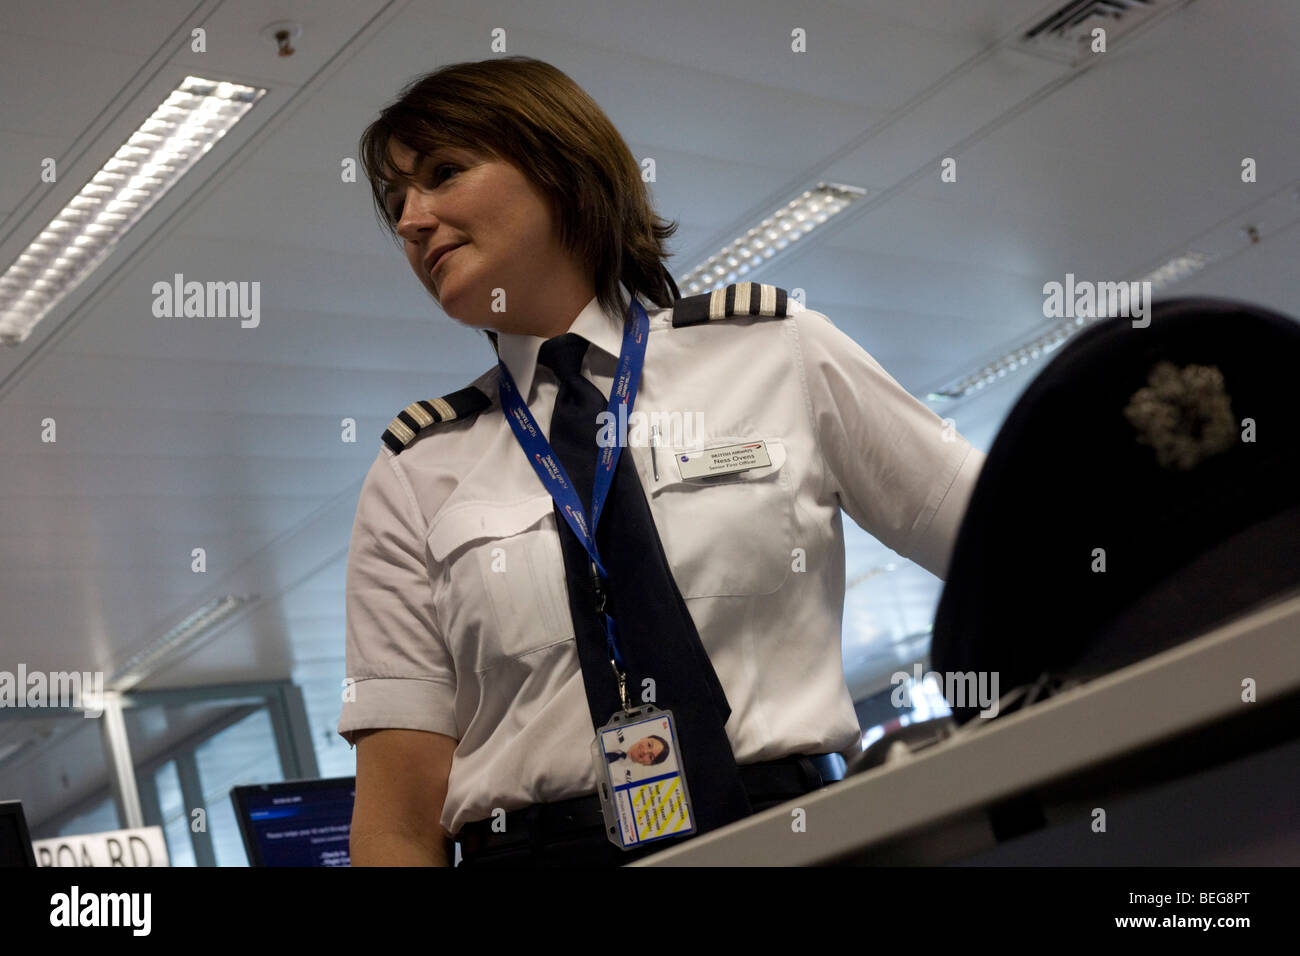 A lady pilot examines flight data and documents in the